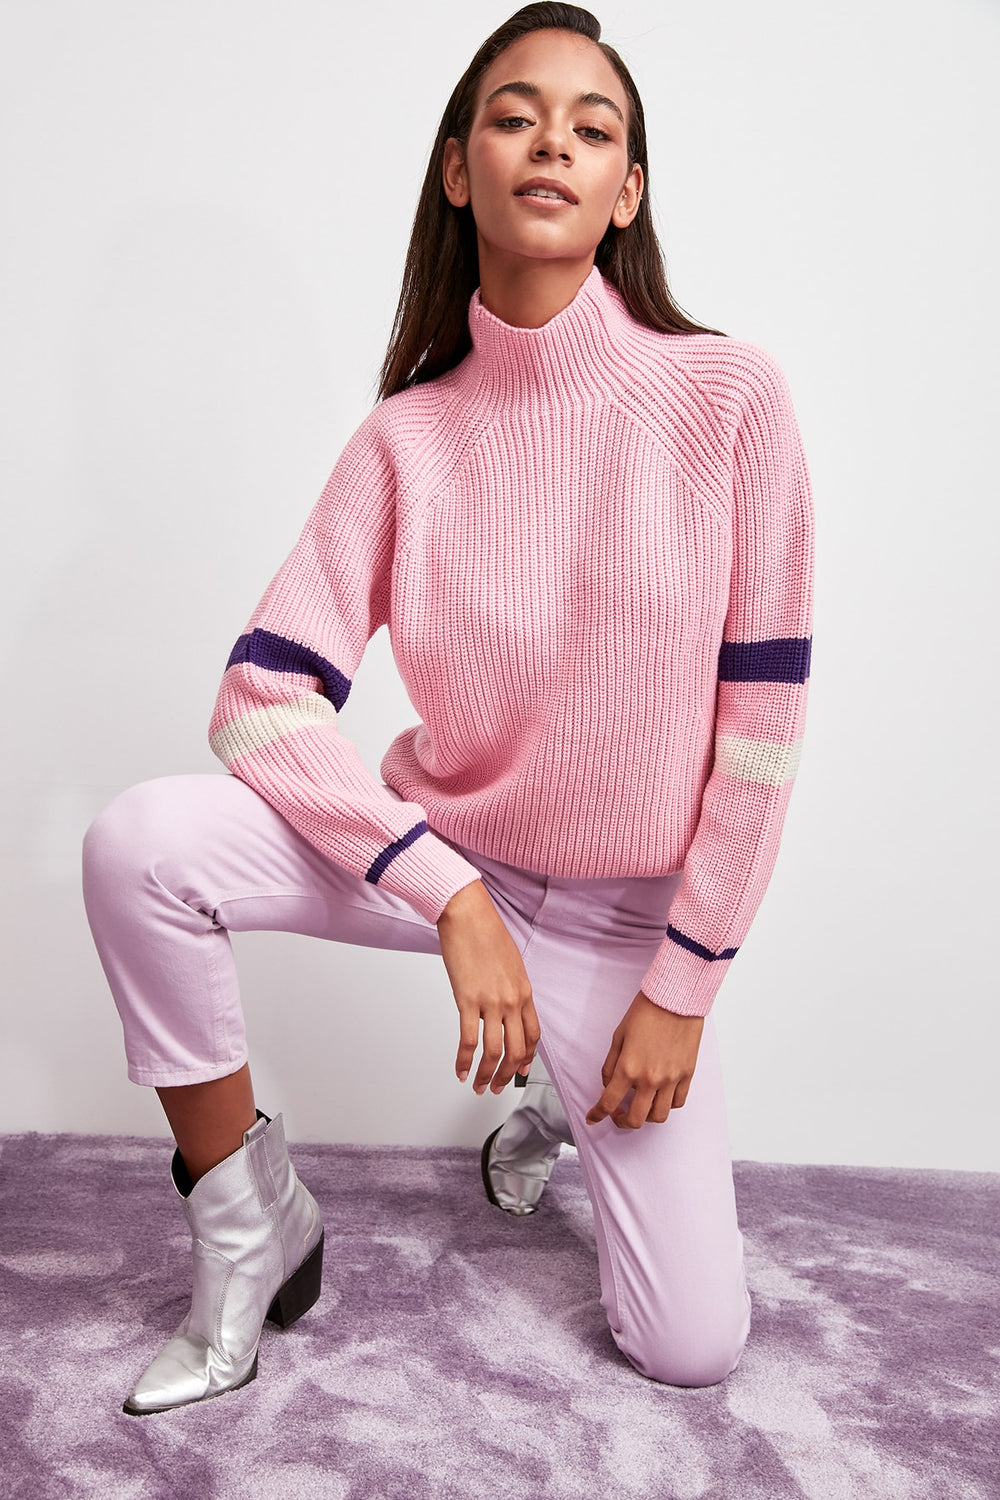 WOMEN-Pink Turtleneck Handle Stripe Knitwear Sweater - Top Maxy